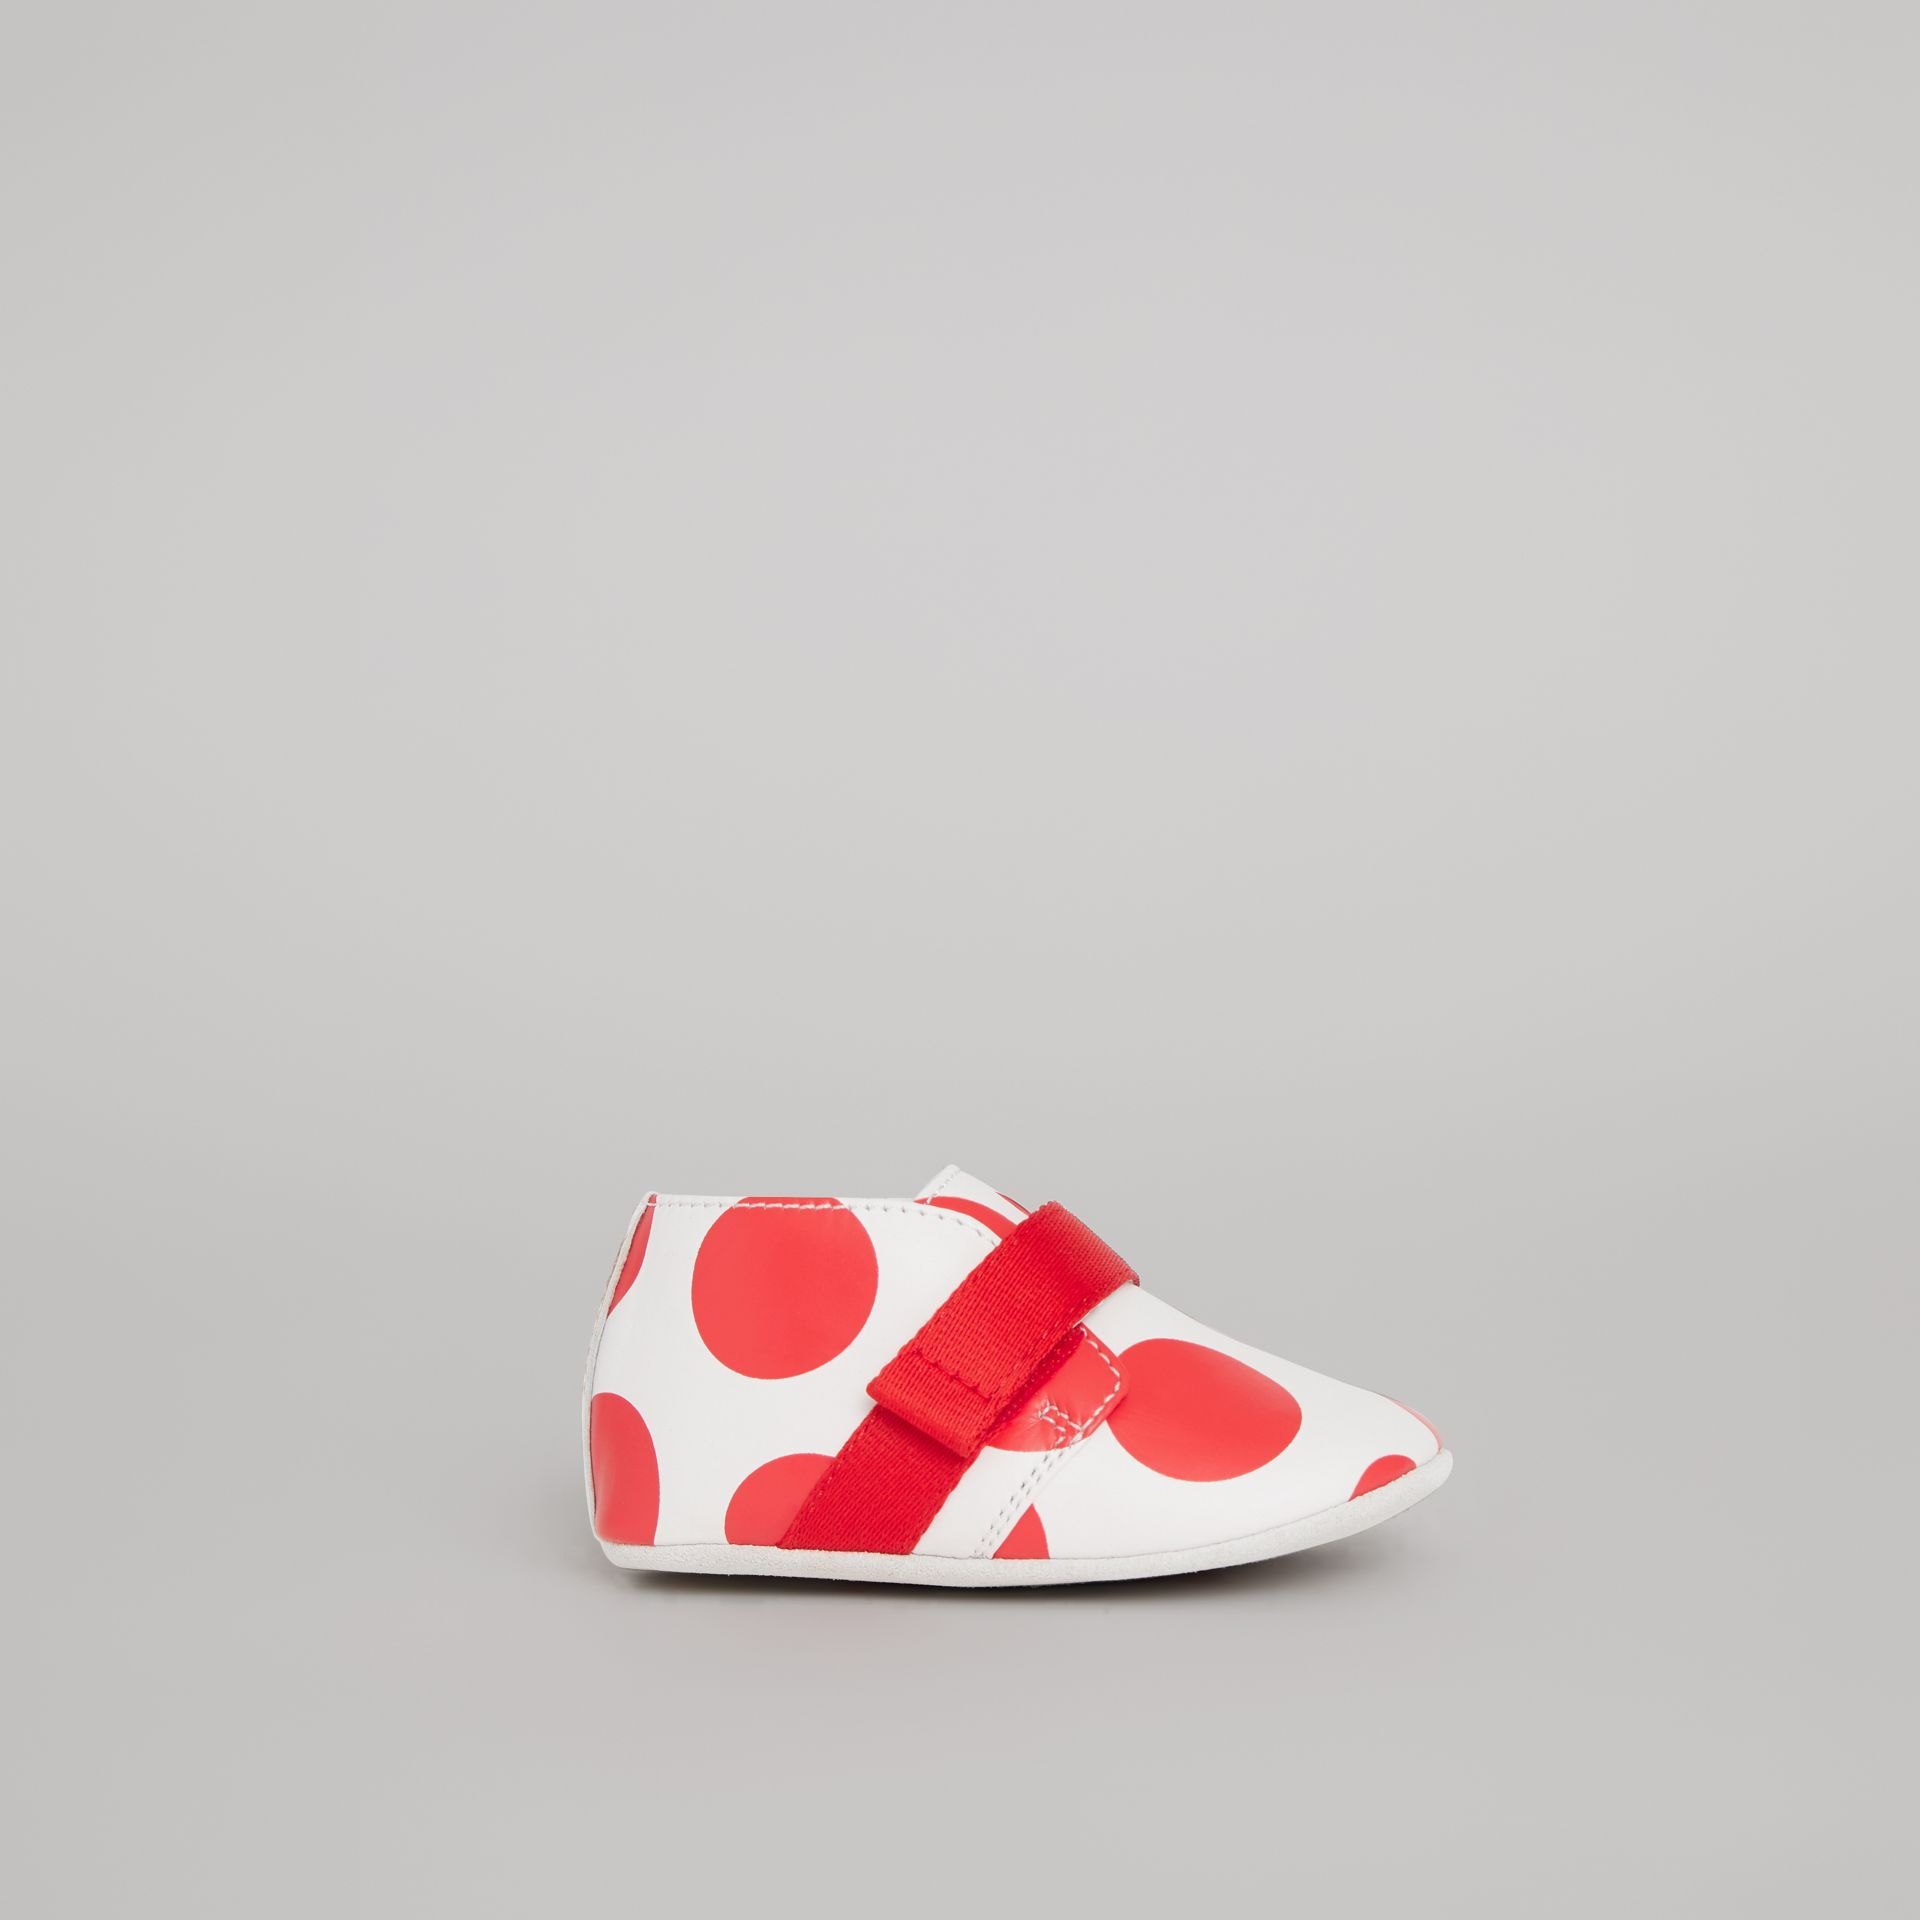 Spot Print Leather Shoes in Bright Red - Children | Burberry Australia - gallery image 3